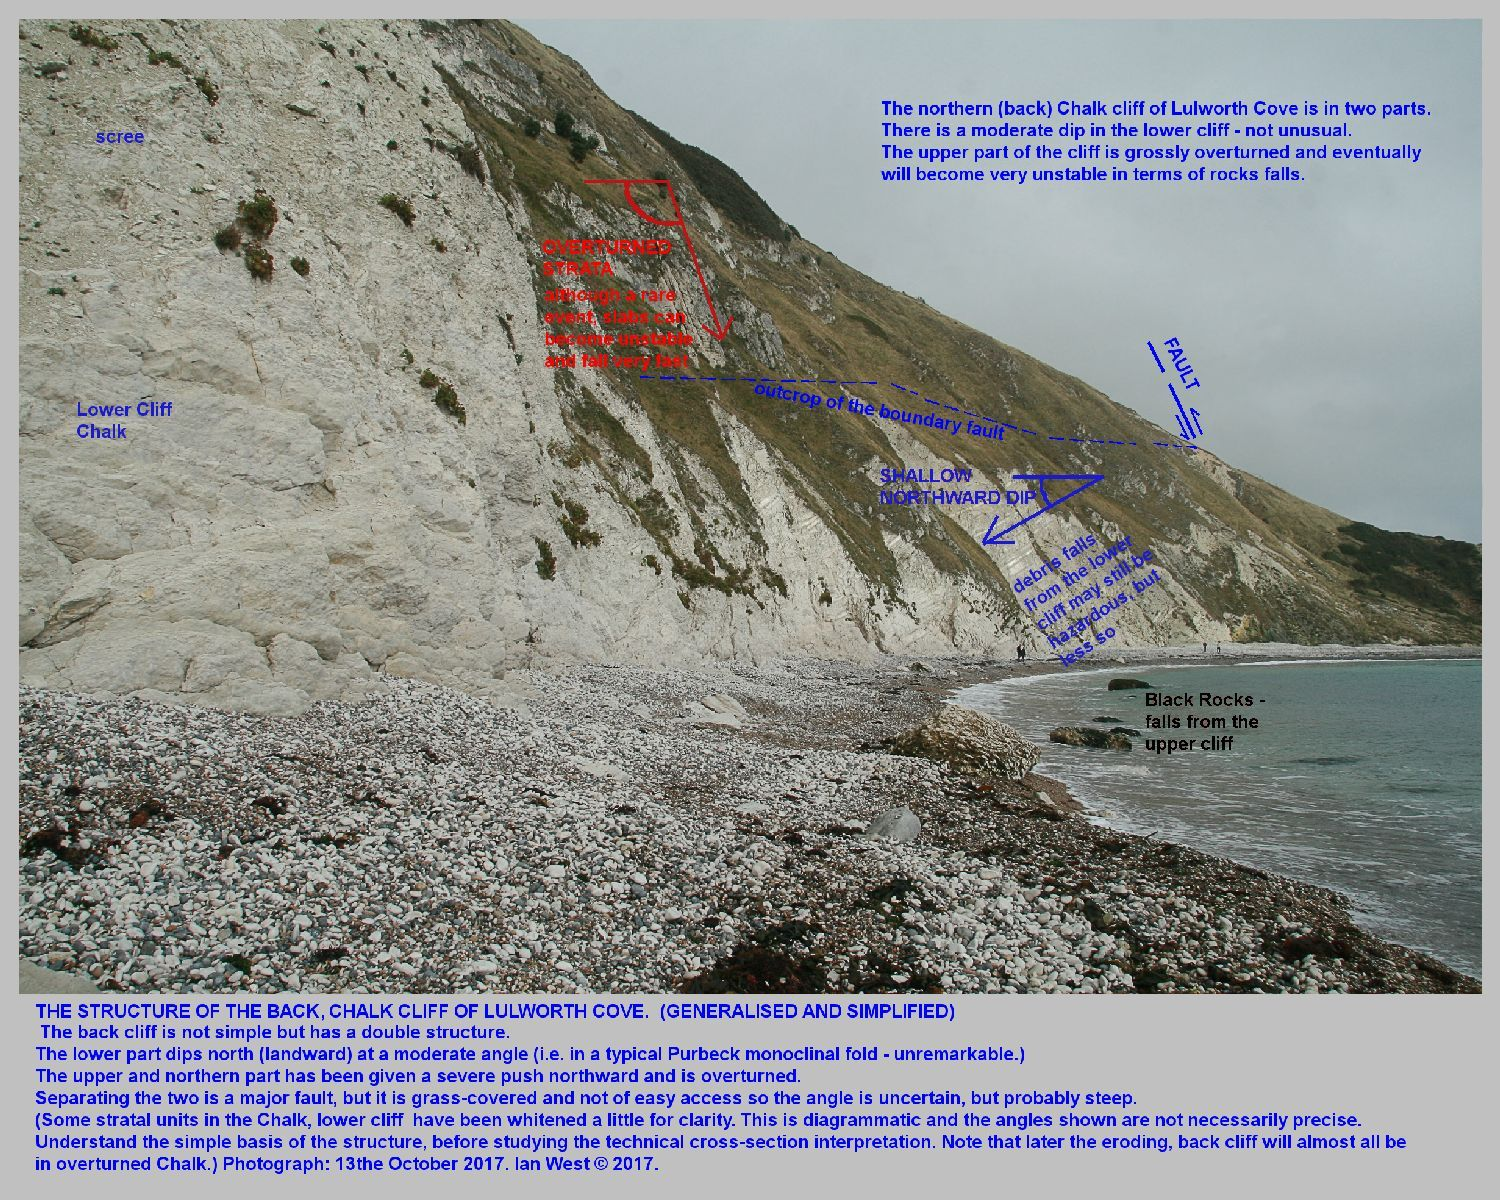 The changes in dip on either side of the steep fault in the back cliff of Lulworth Cove, Dorset, and some relationship to occasional rock falls